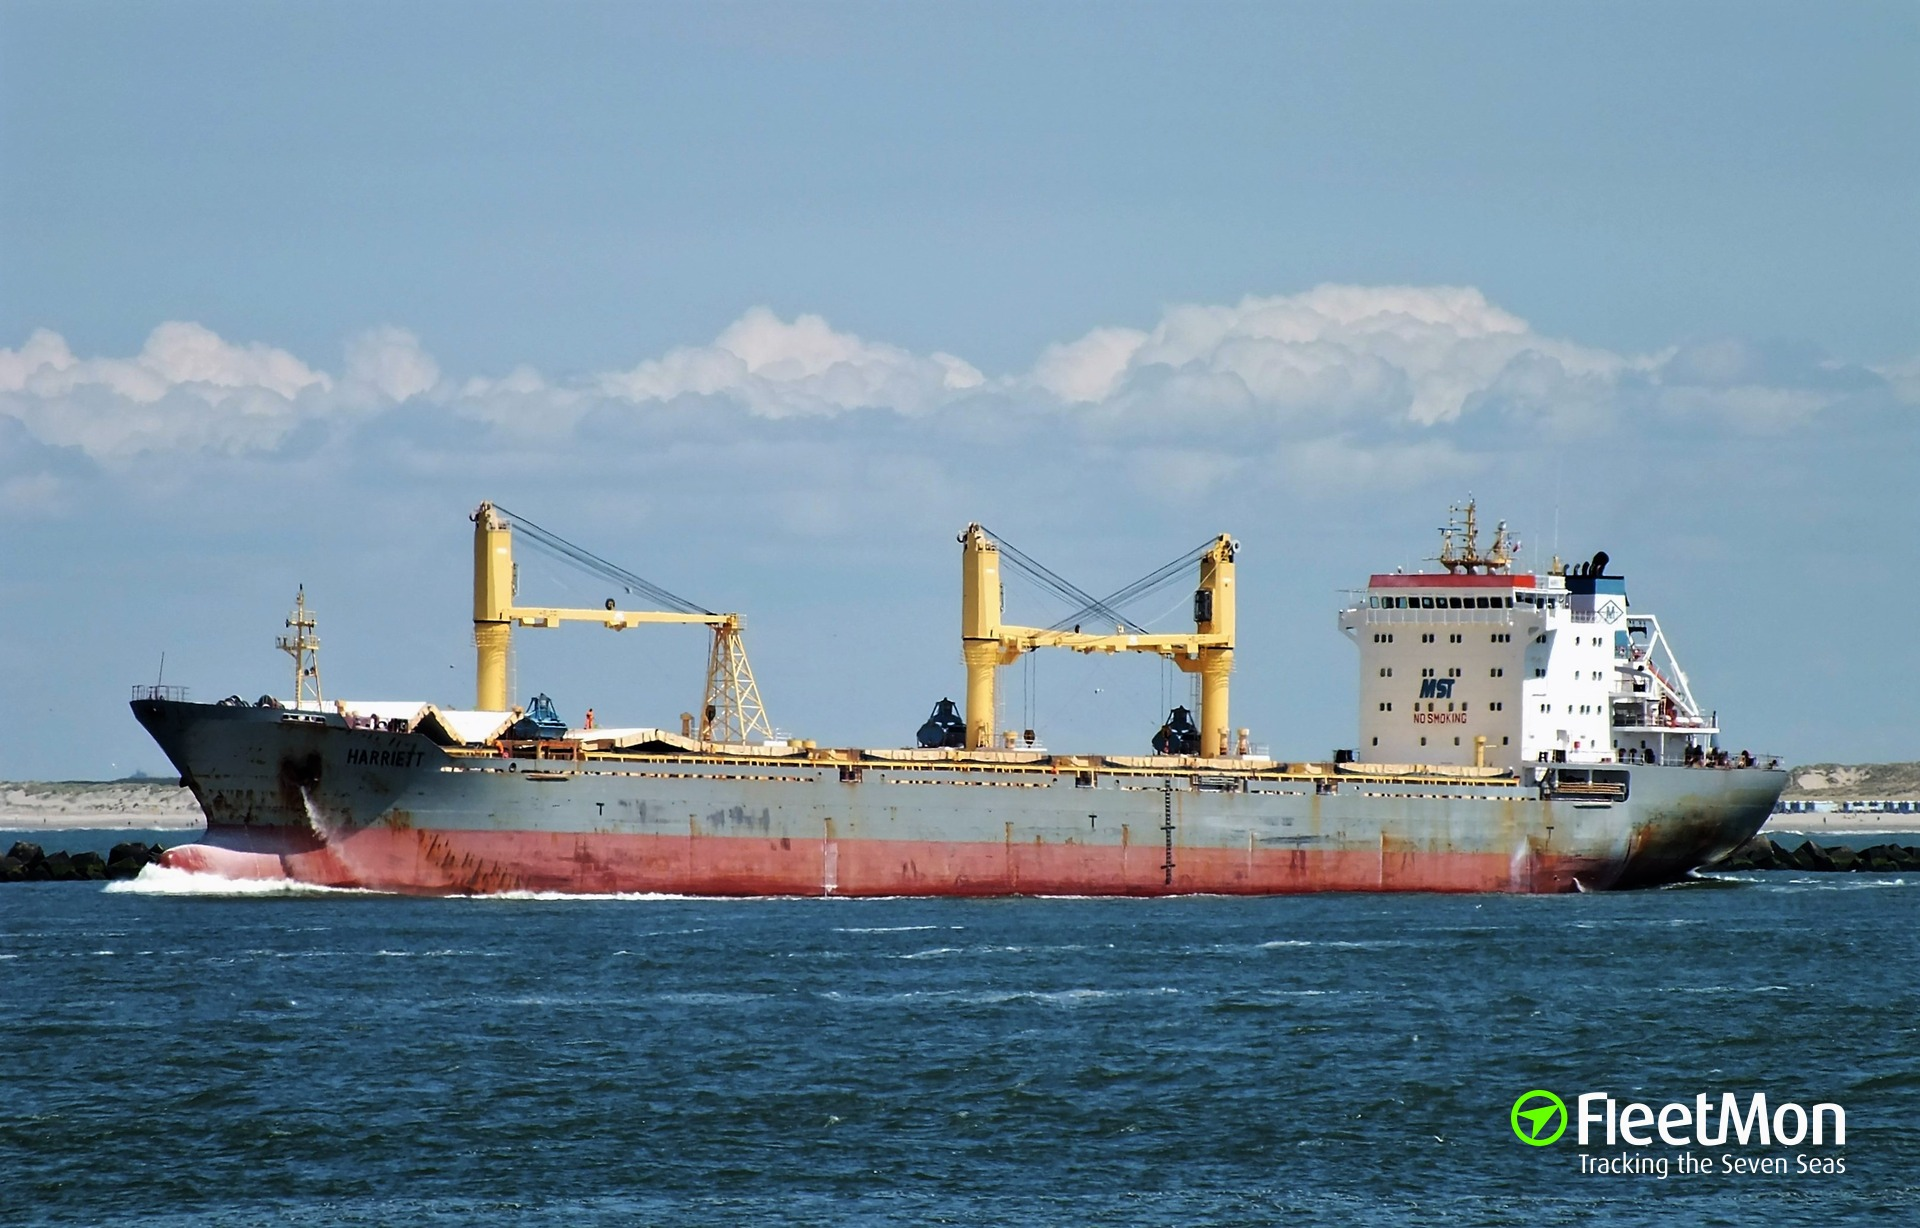 Bulk carrier grounding in White sea, Mar 19 Update